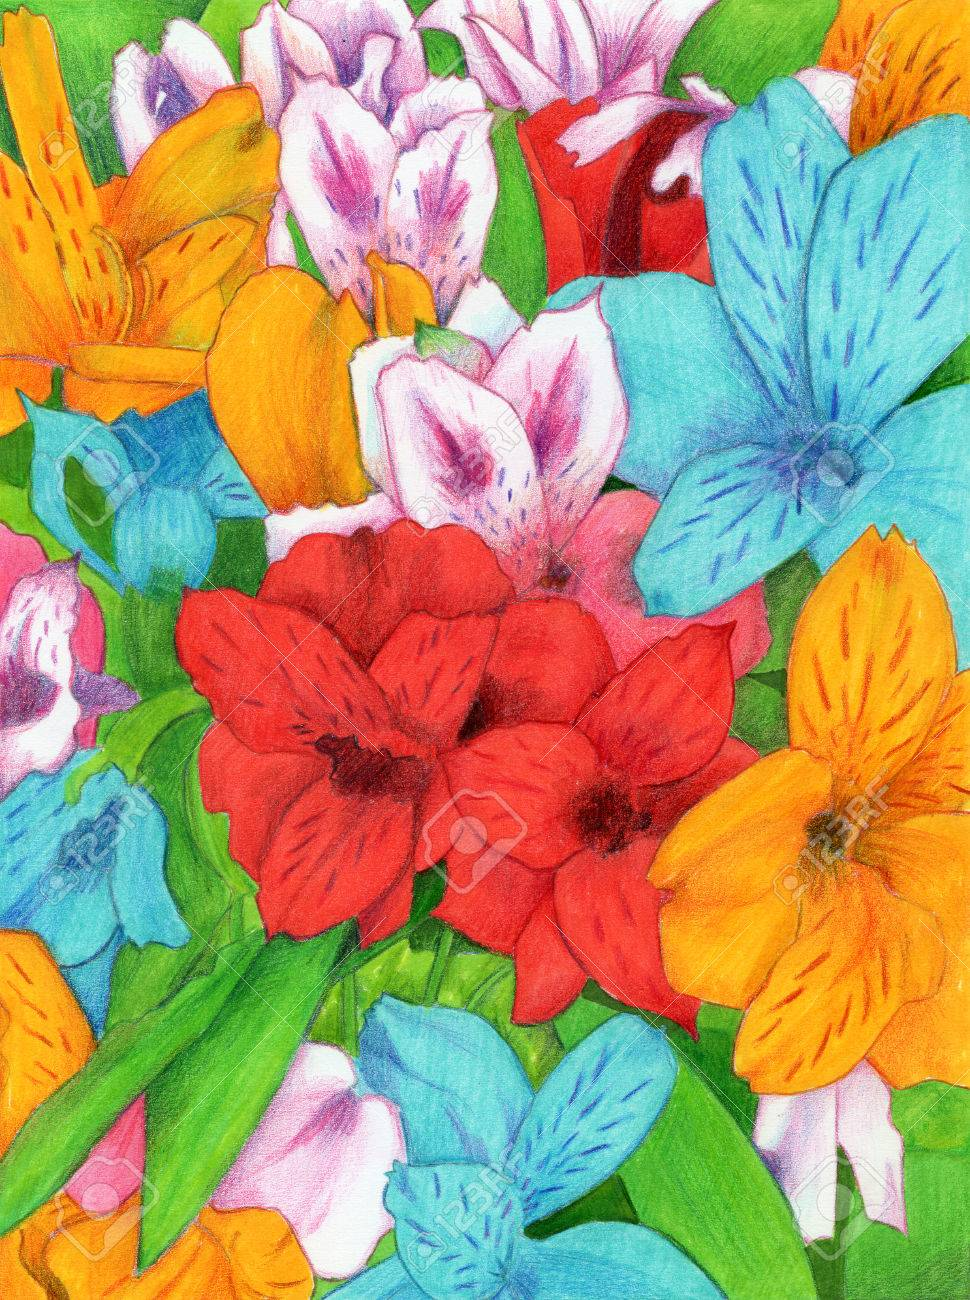 Colorful Flowers - A Page Full Of Colorful Flowers, Made With ...